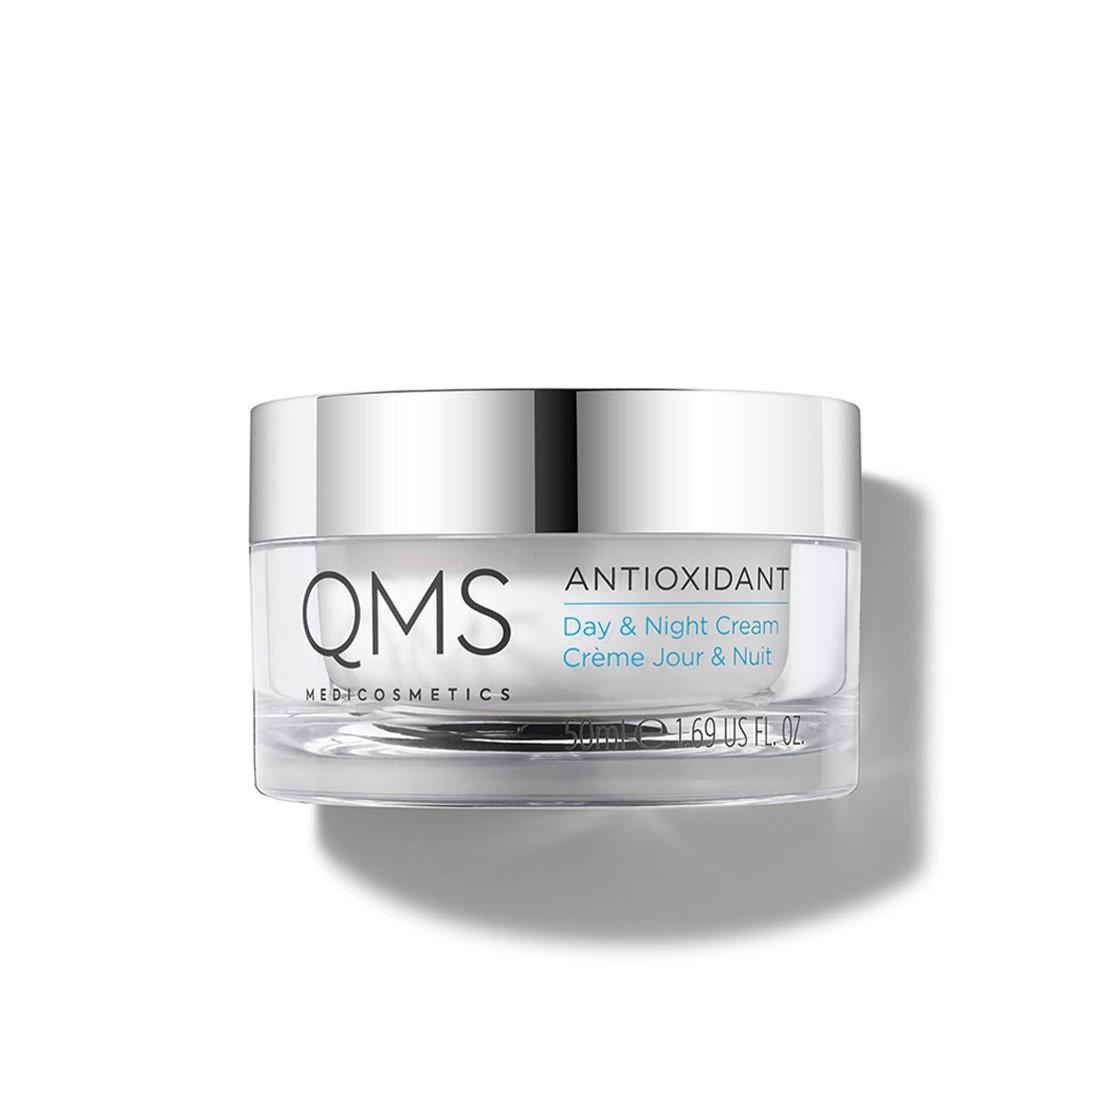 Pot of antioxidant cream for day and night to intensly moisturise dry skin